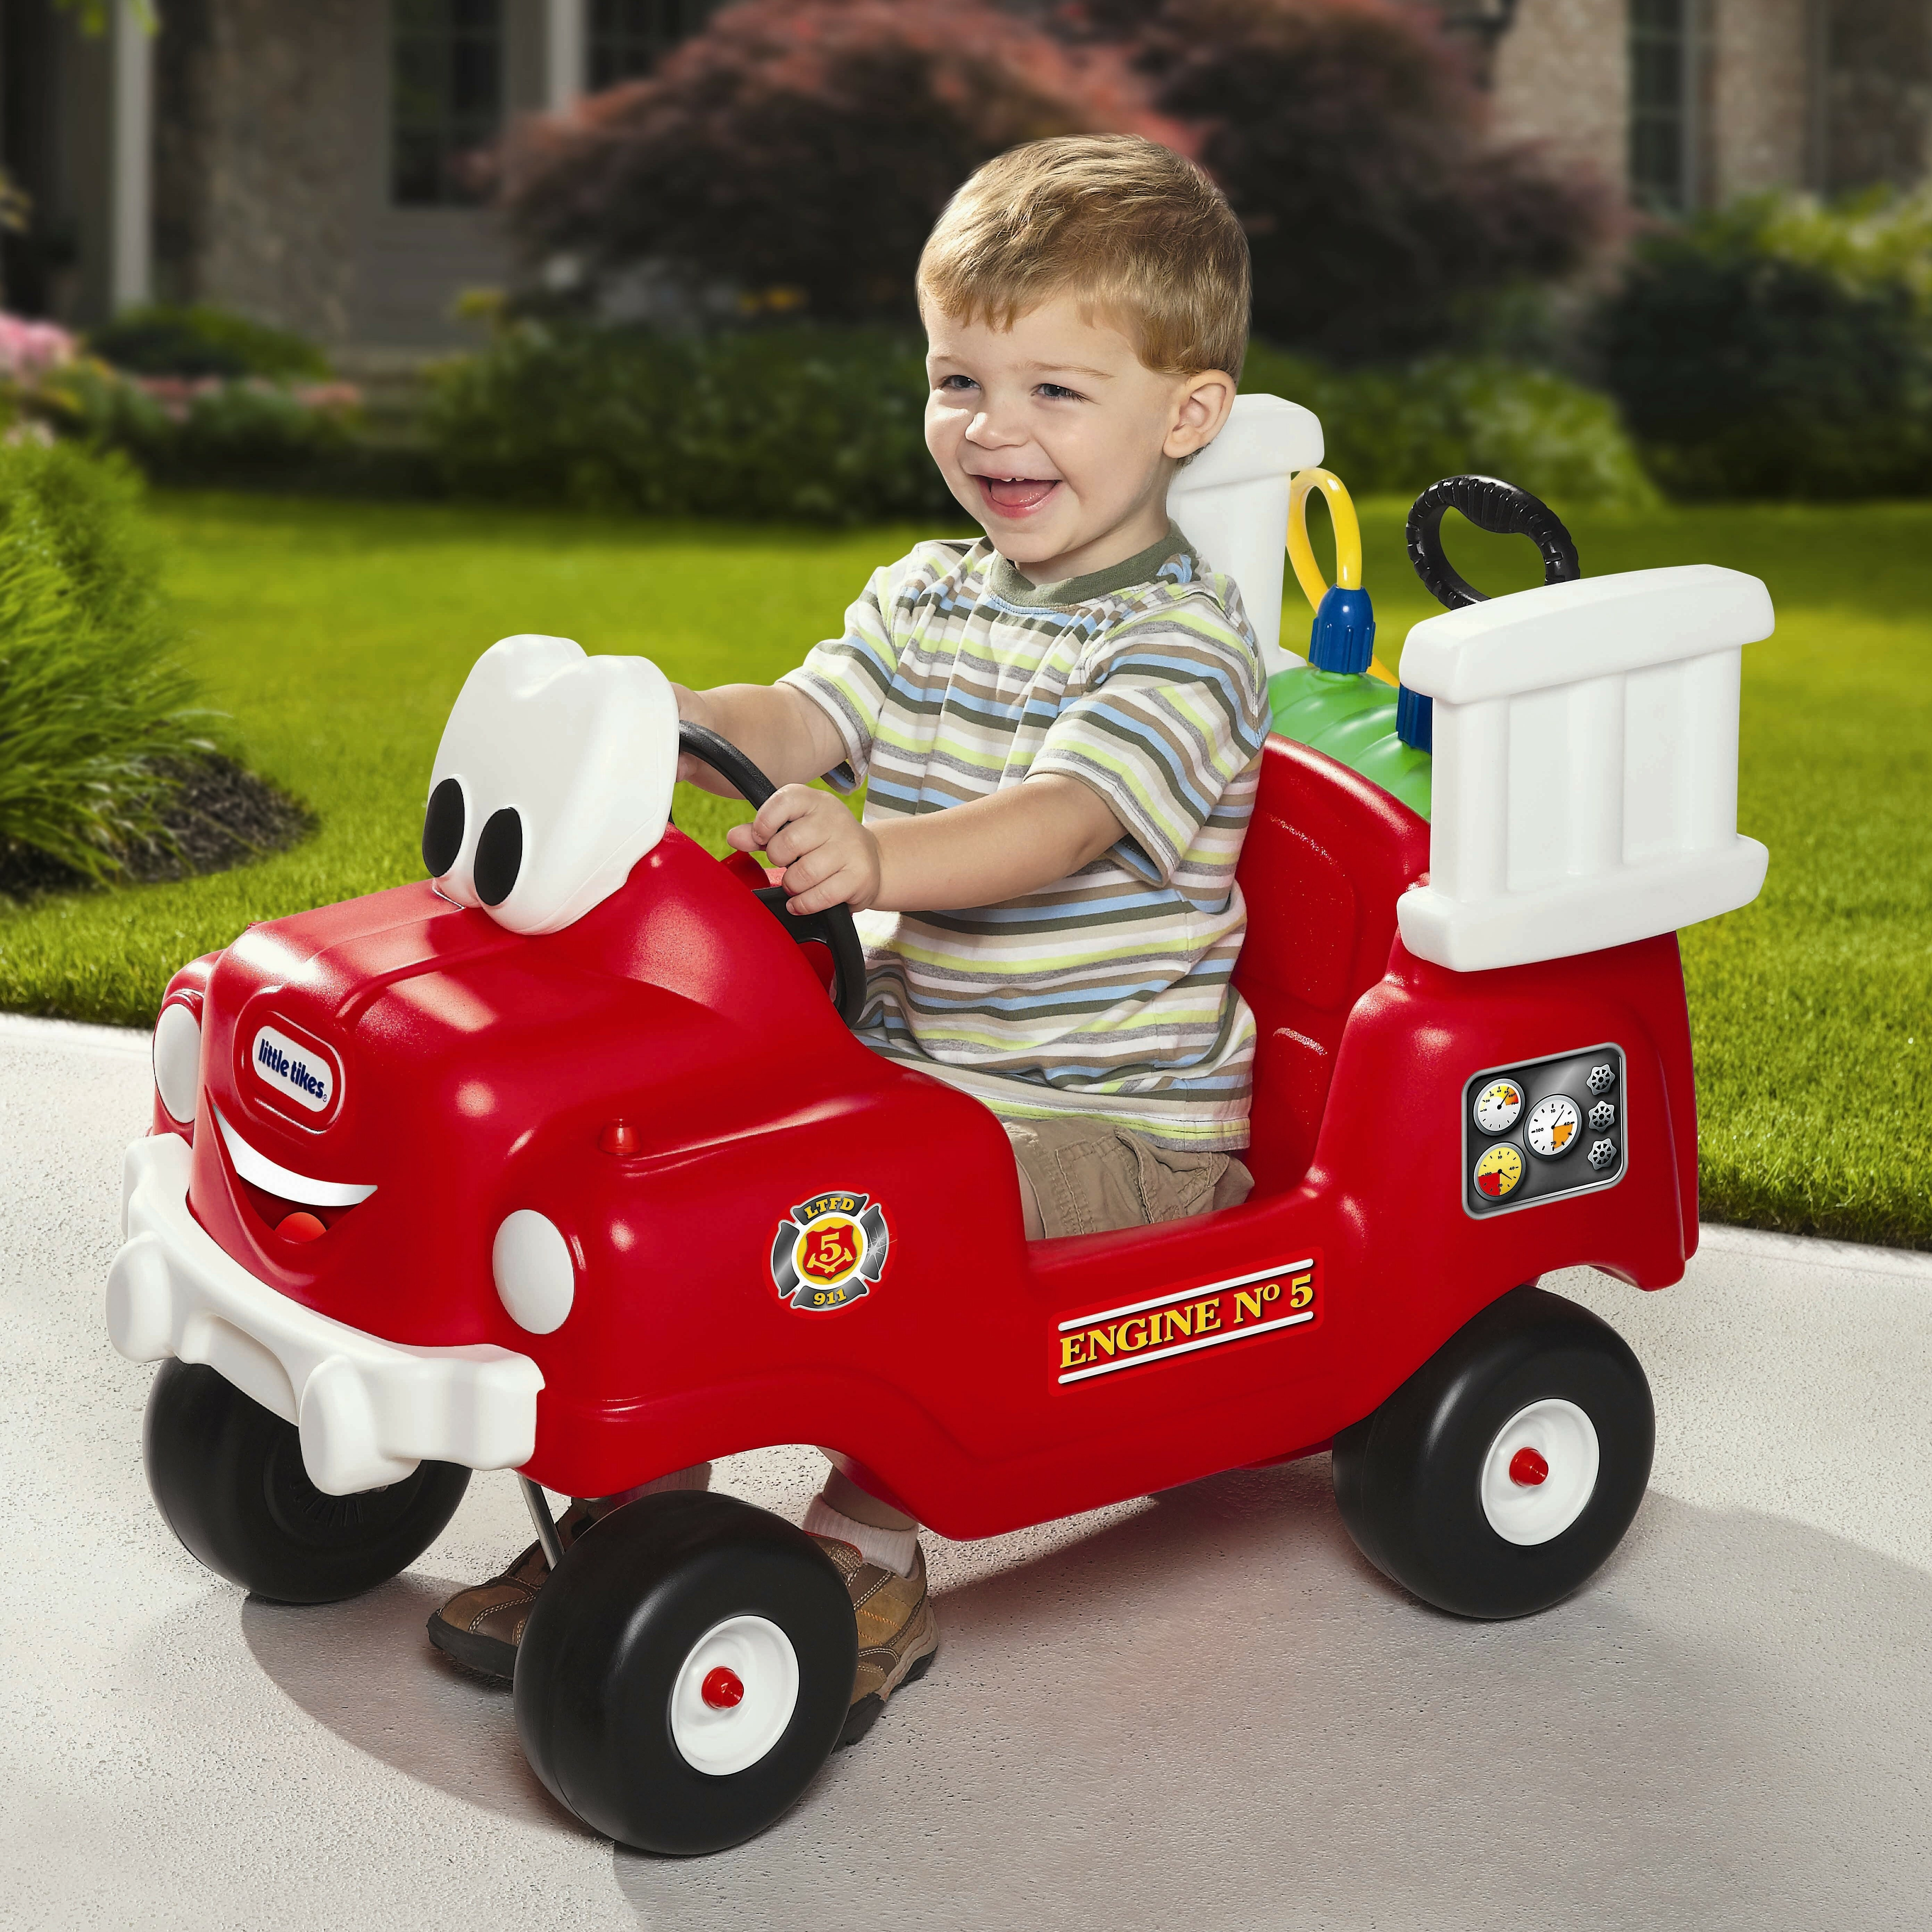 Little tikes lightning mcqueen toddler bed - Little Tikes Spray And Rescue Push Fire Truck Little Tikes Fire Truck Toddler Bed